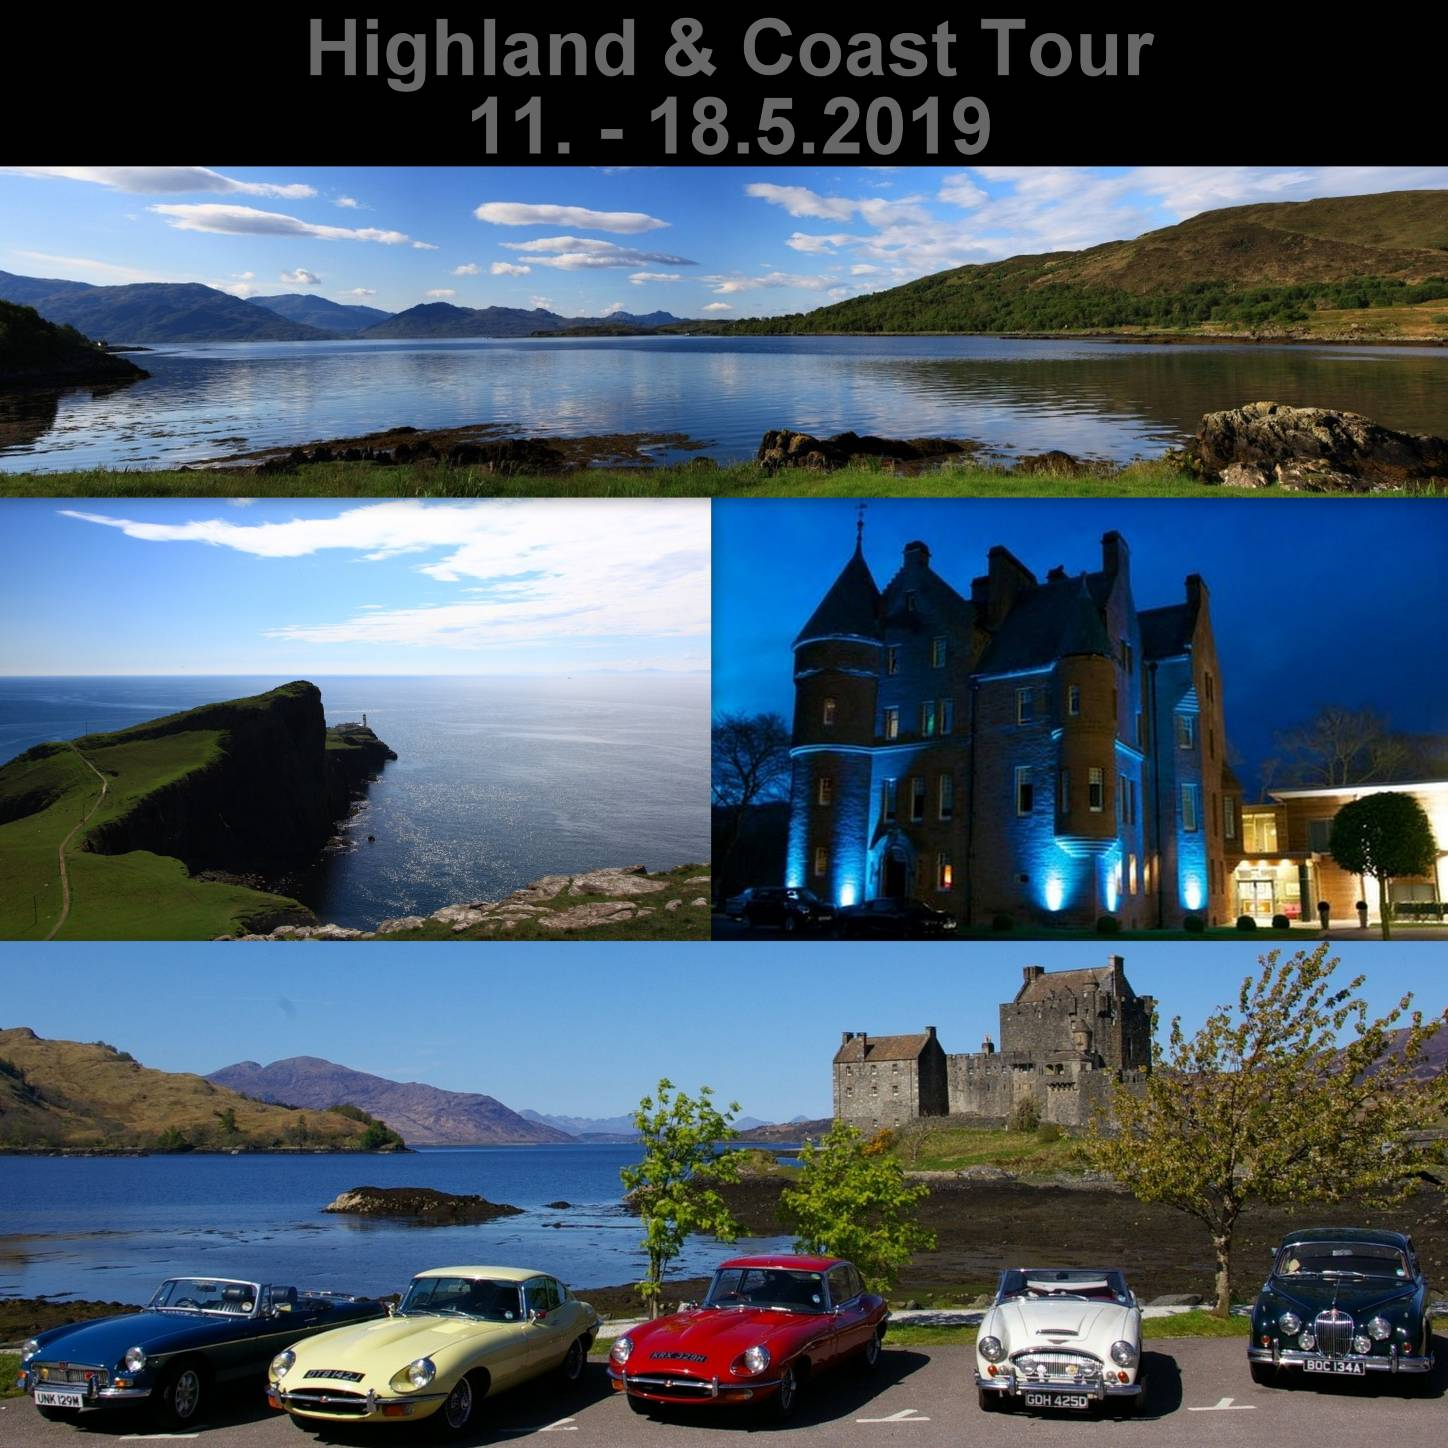 Highlands & Coast Tour 2019